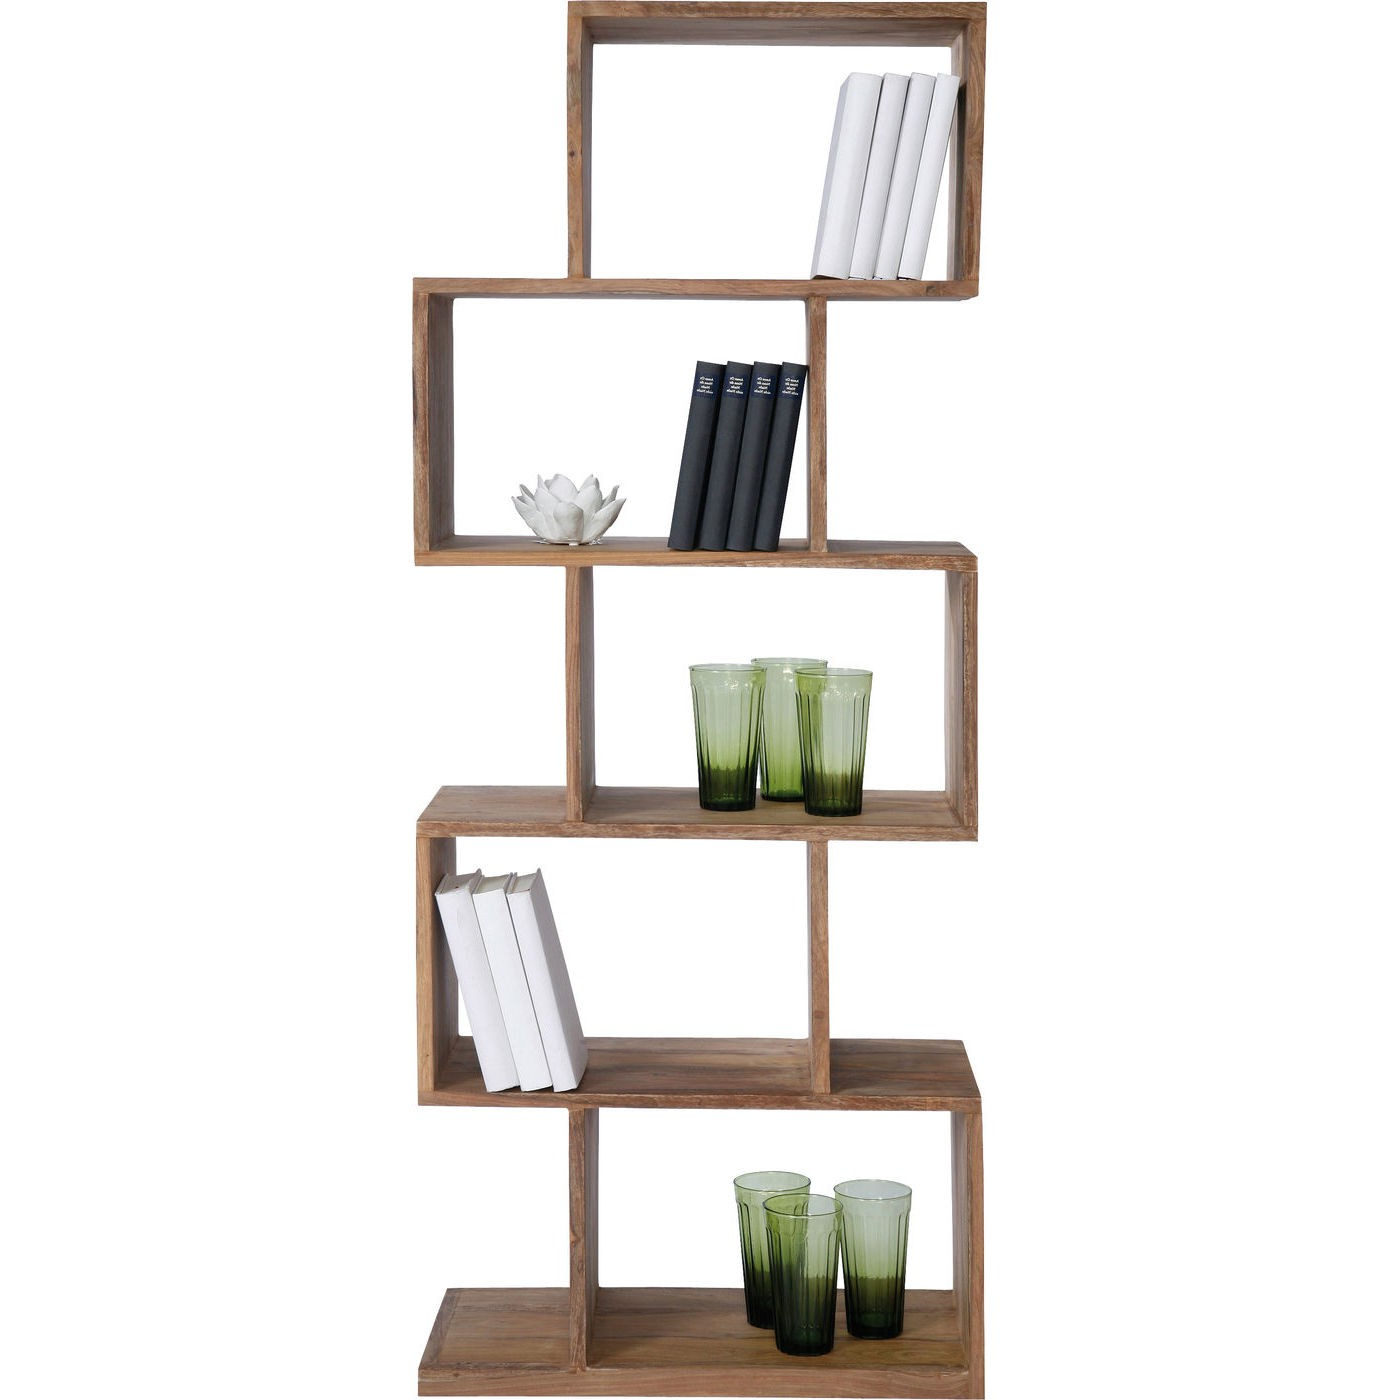 Authentico Regal Zick Zack 150 Throughout Widely Used Zack Standard Bookcases (View 4 of 20)